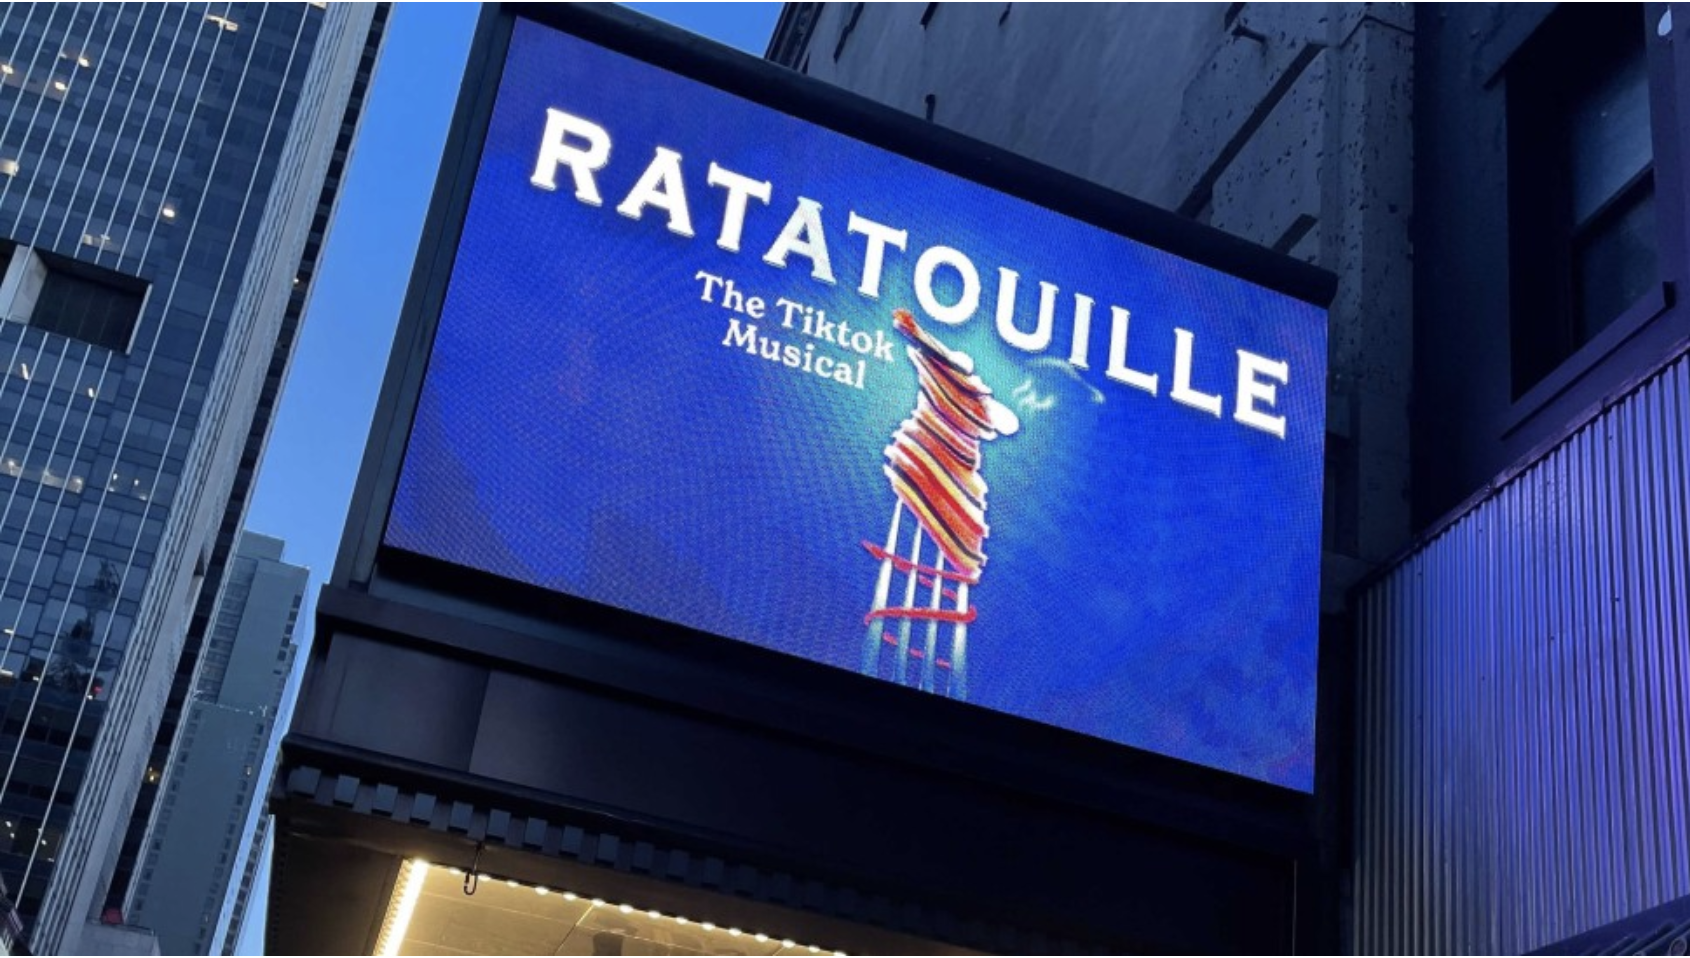 """A billboard on Broadway is lit up and reads """"Ratatouille: The TikTok Musical."""""""